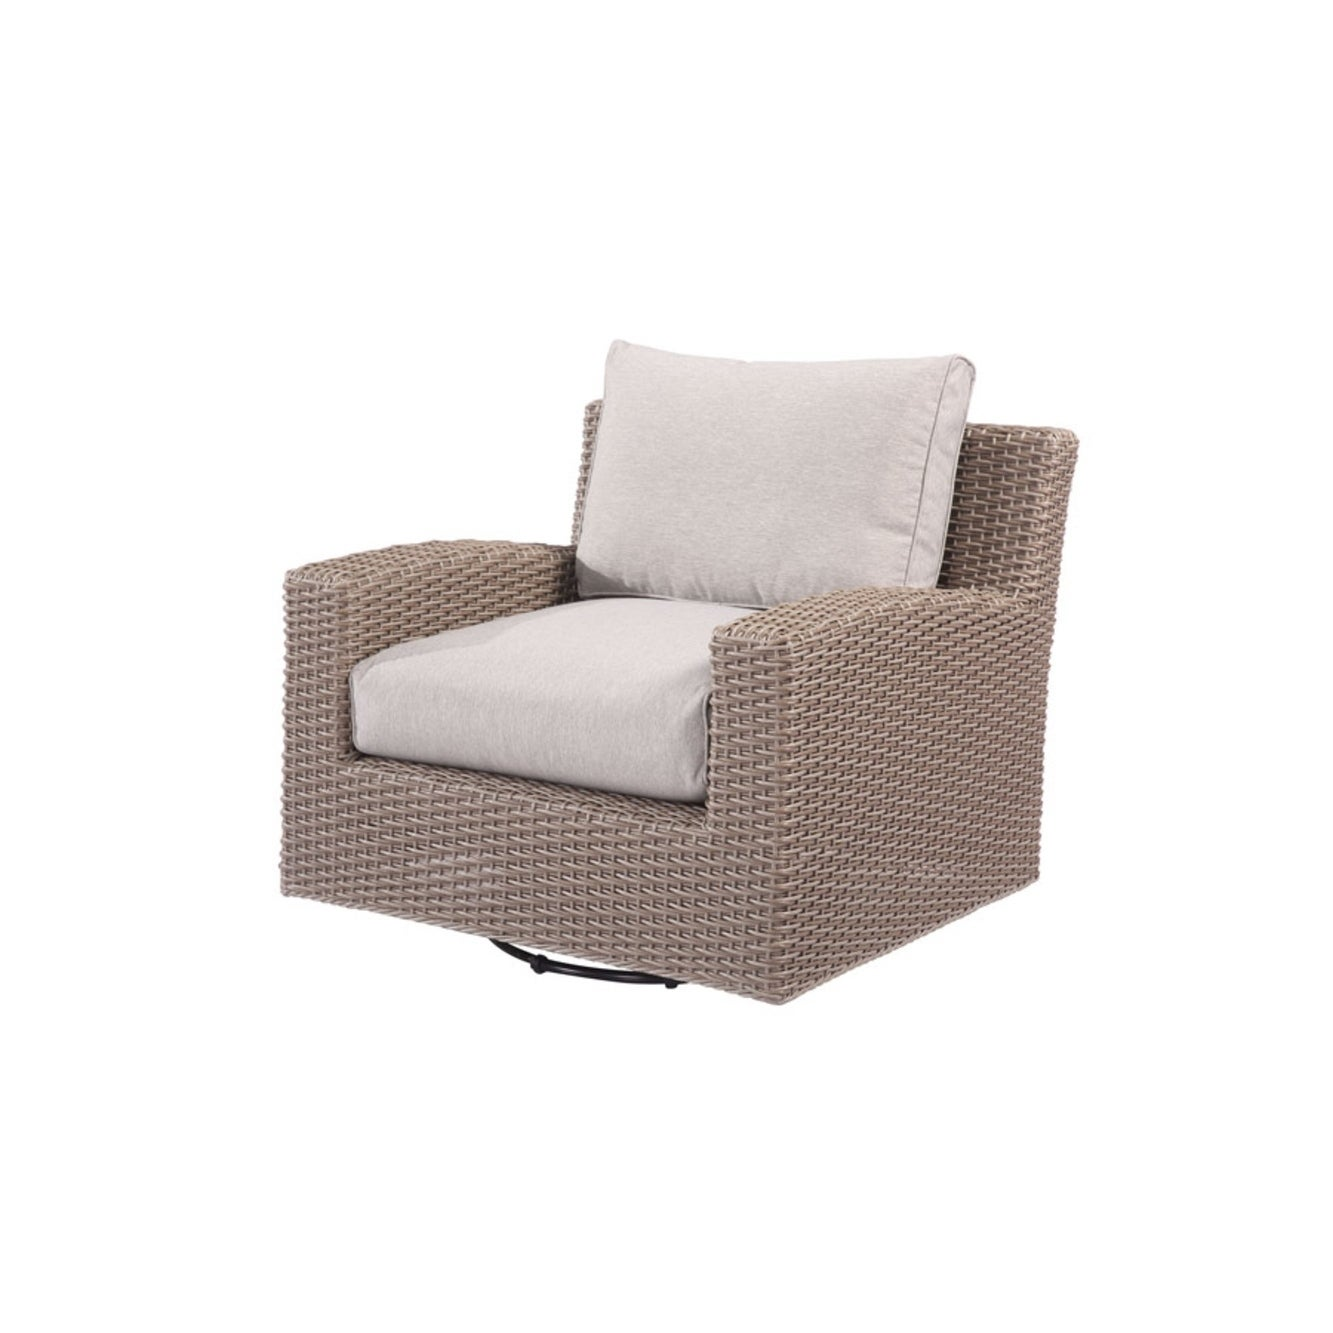 Emerald Reims Spuncrylic Brick Grey Outdoor Swivel Glider...